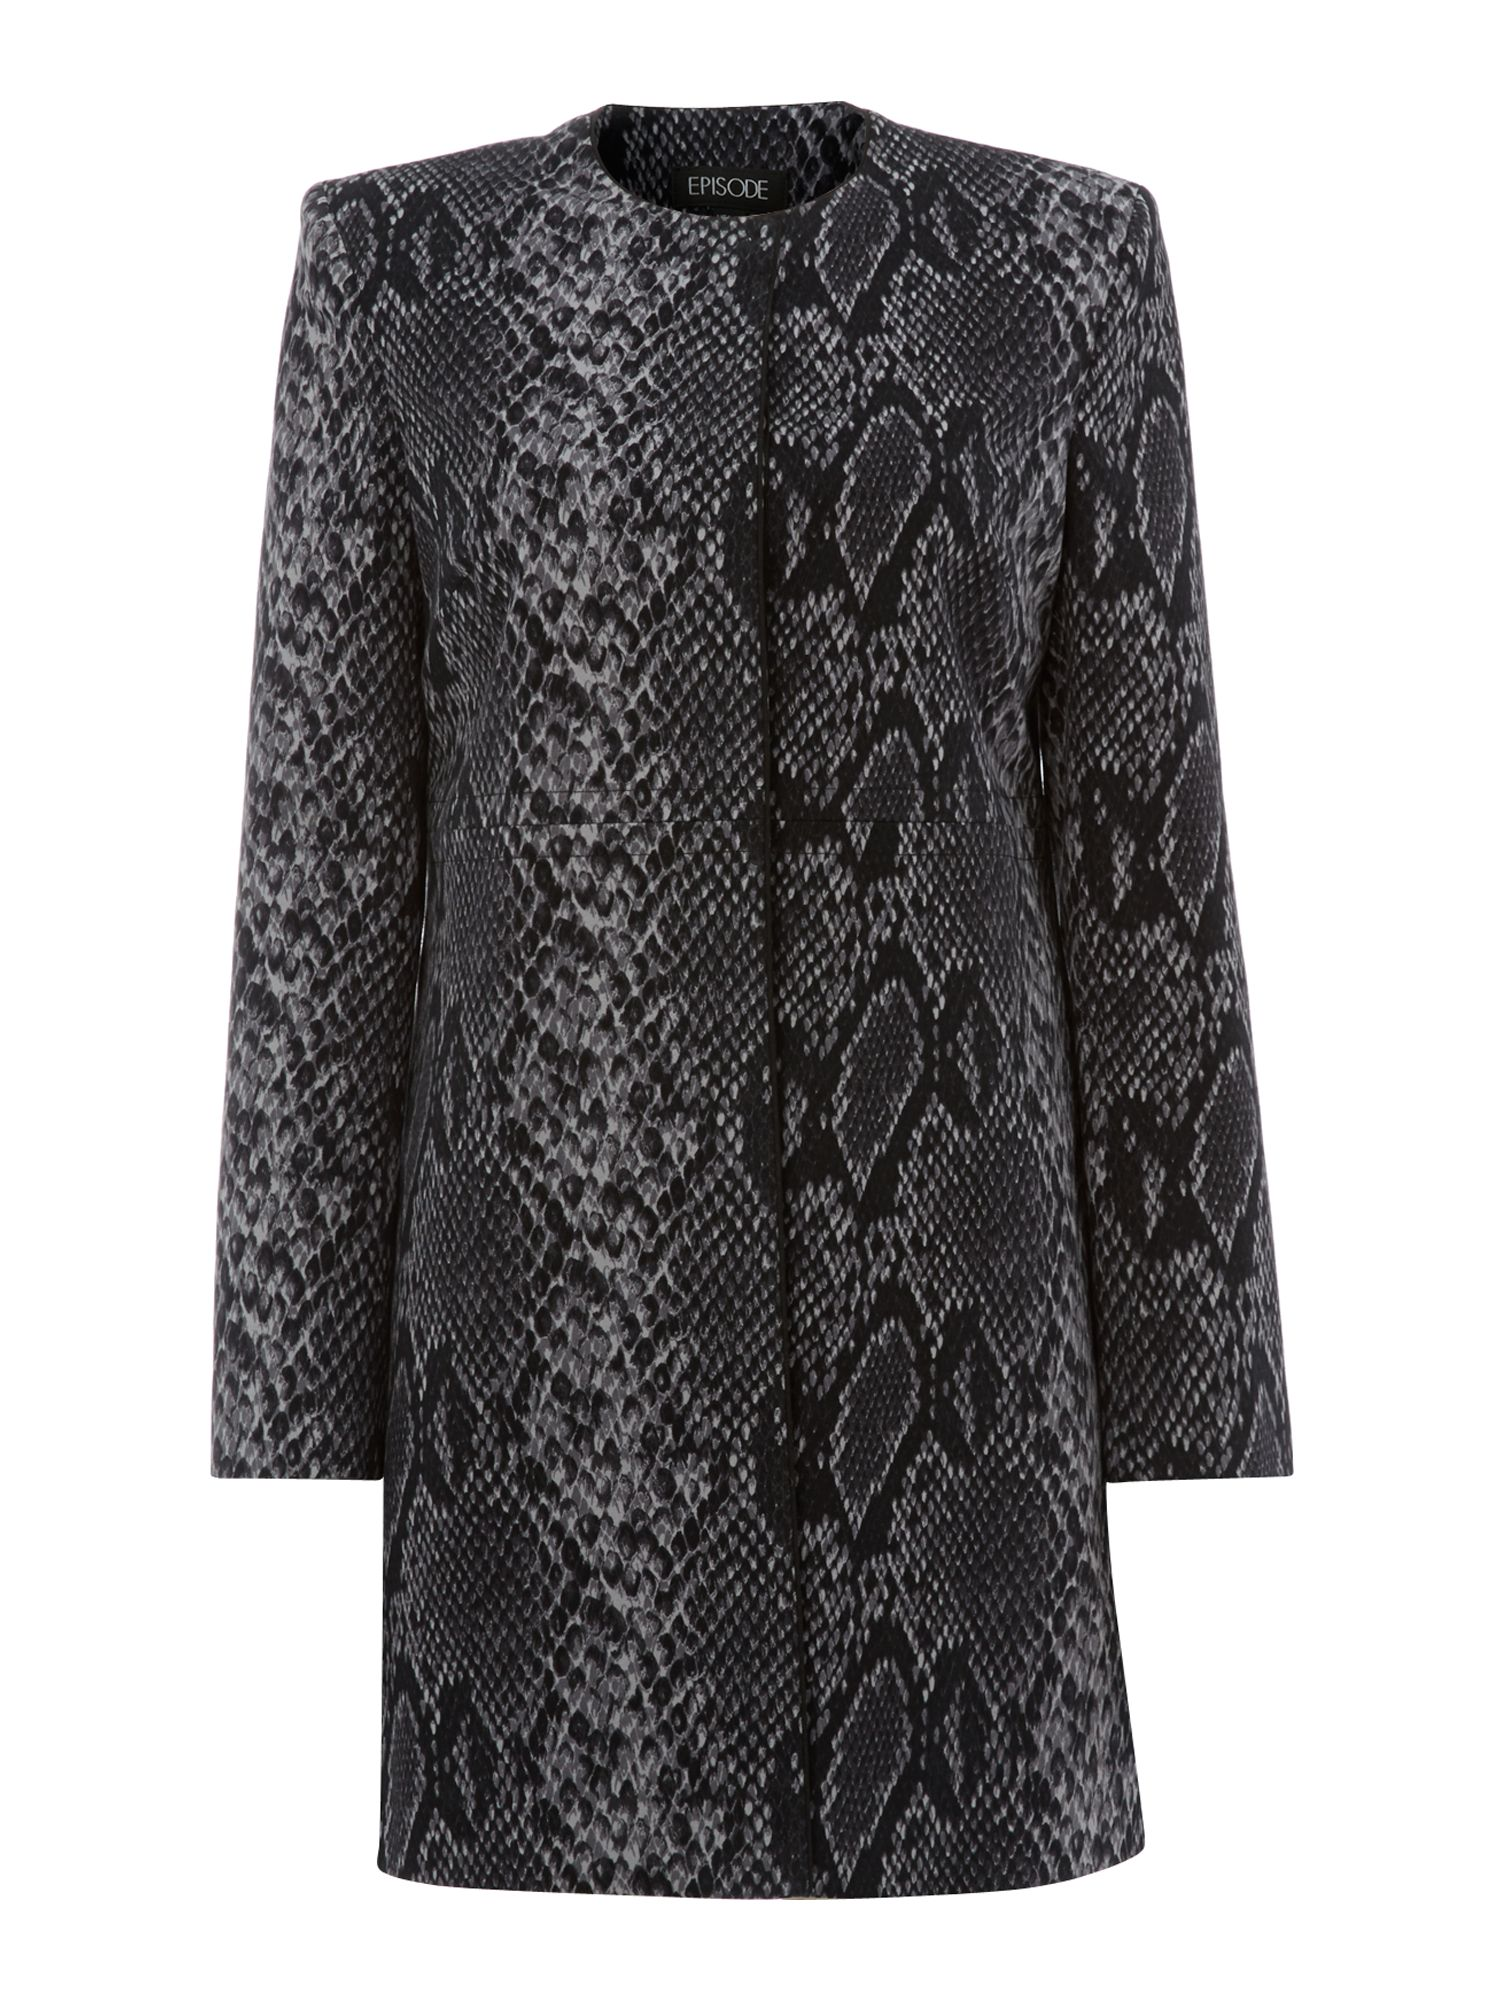 Lizard print dress coat